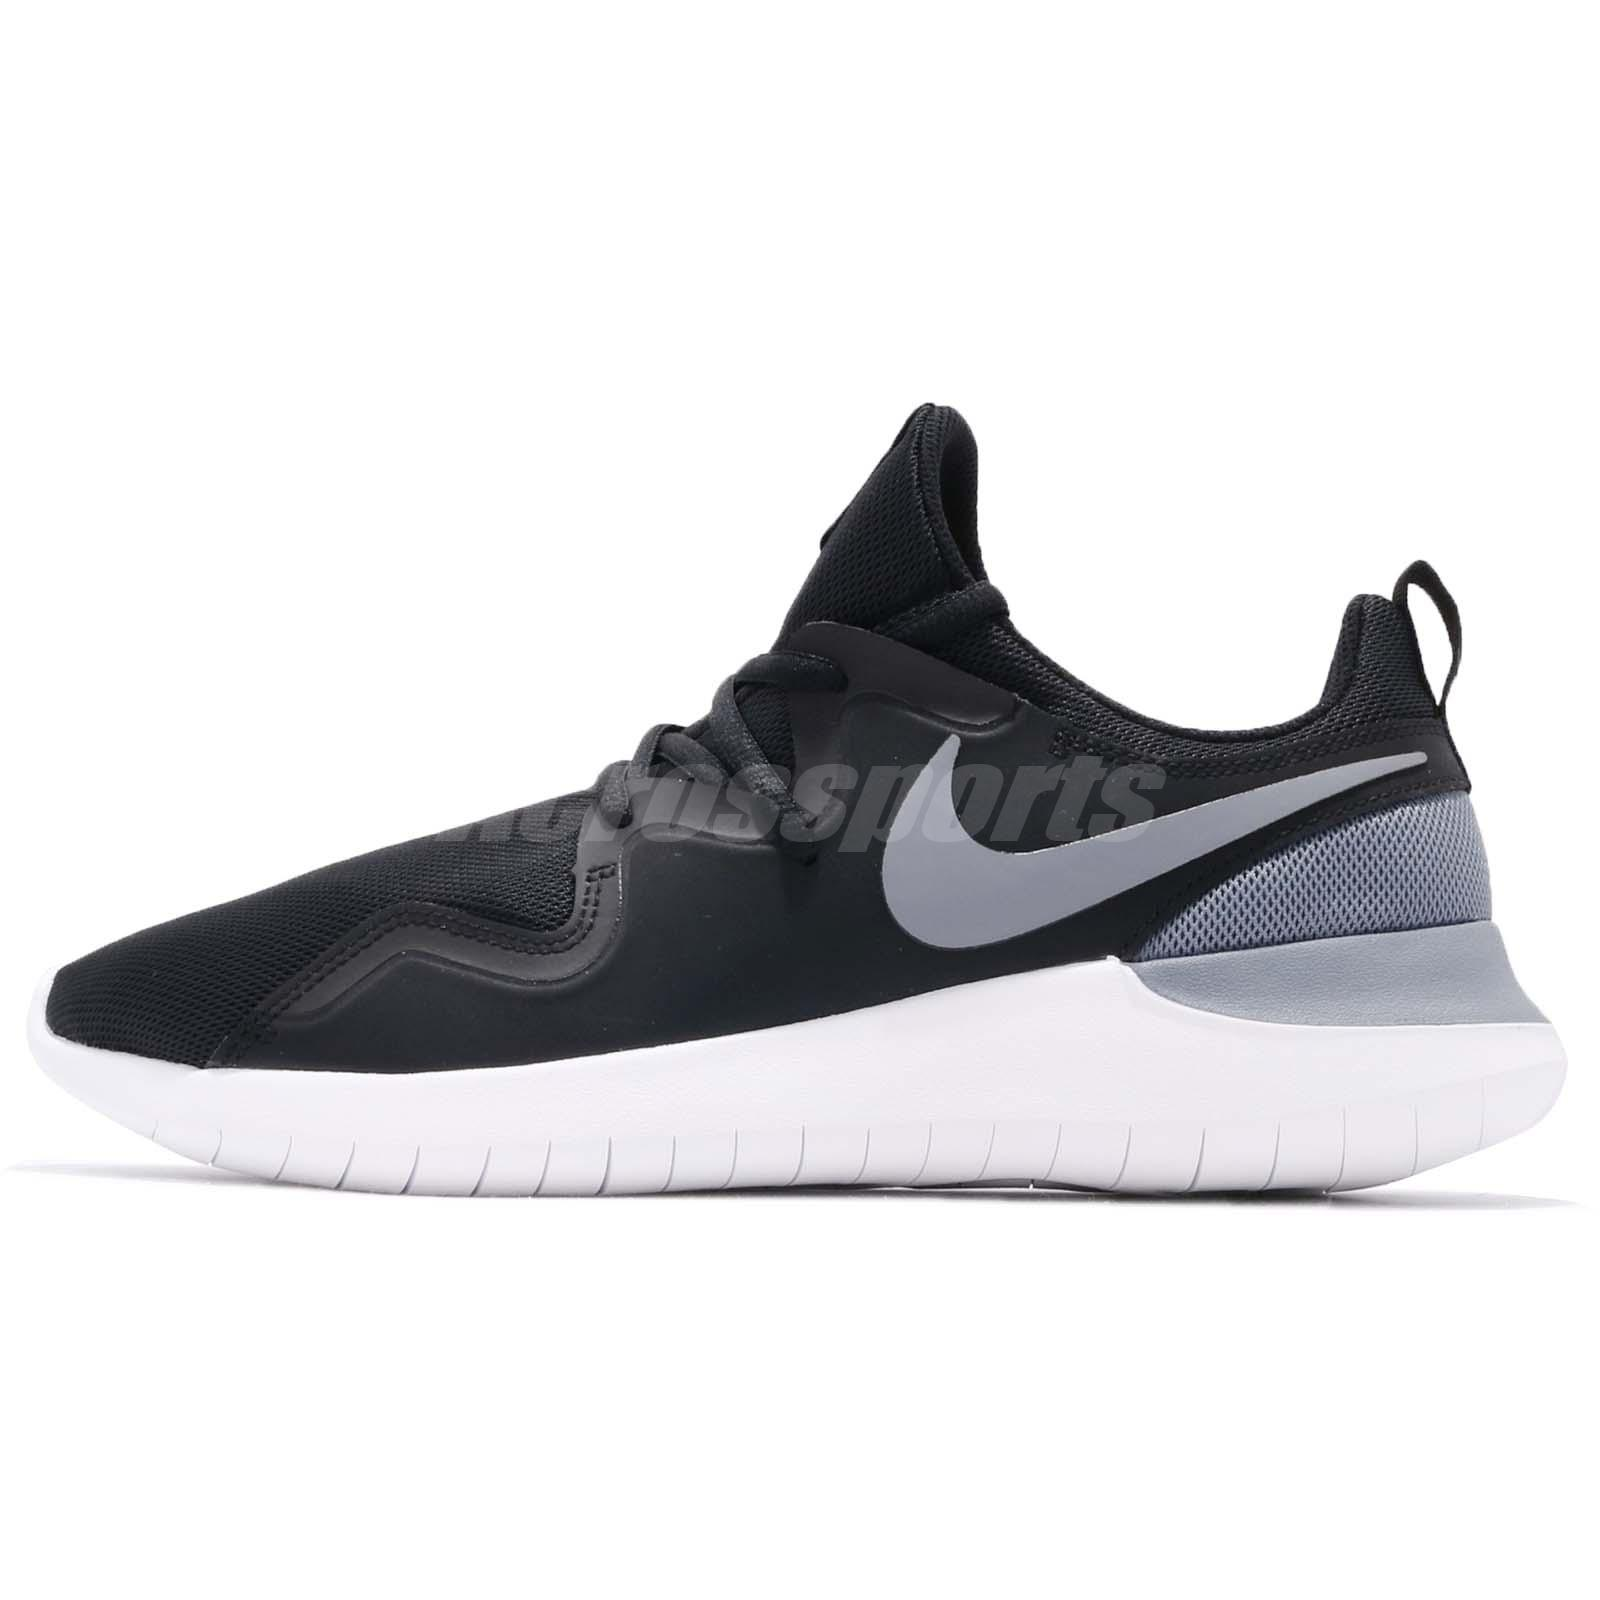 Nike Tessen Black Grey White Men Running Shoes Sneakers Trainers AA2160-001 d980783f5